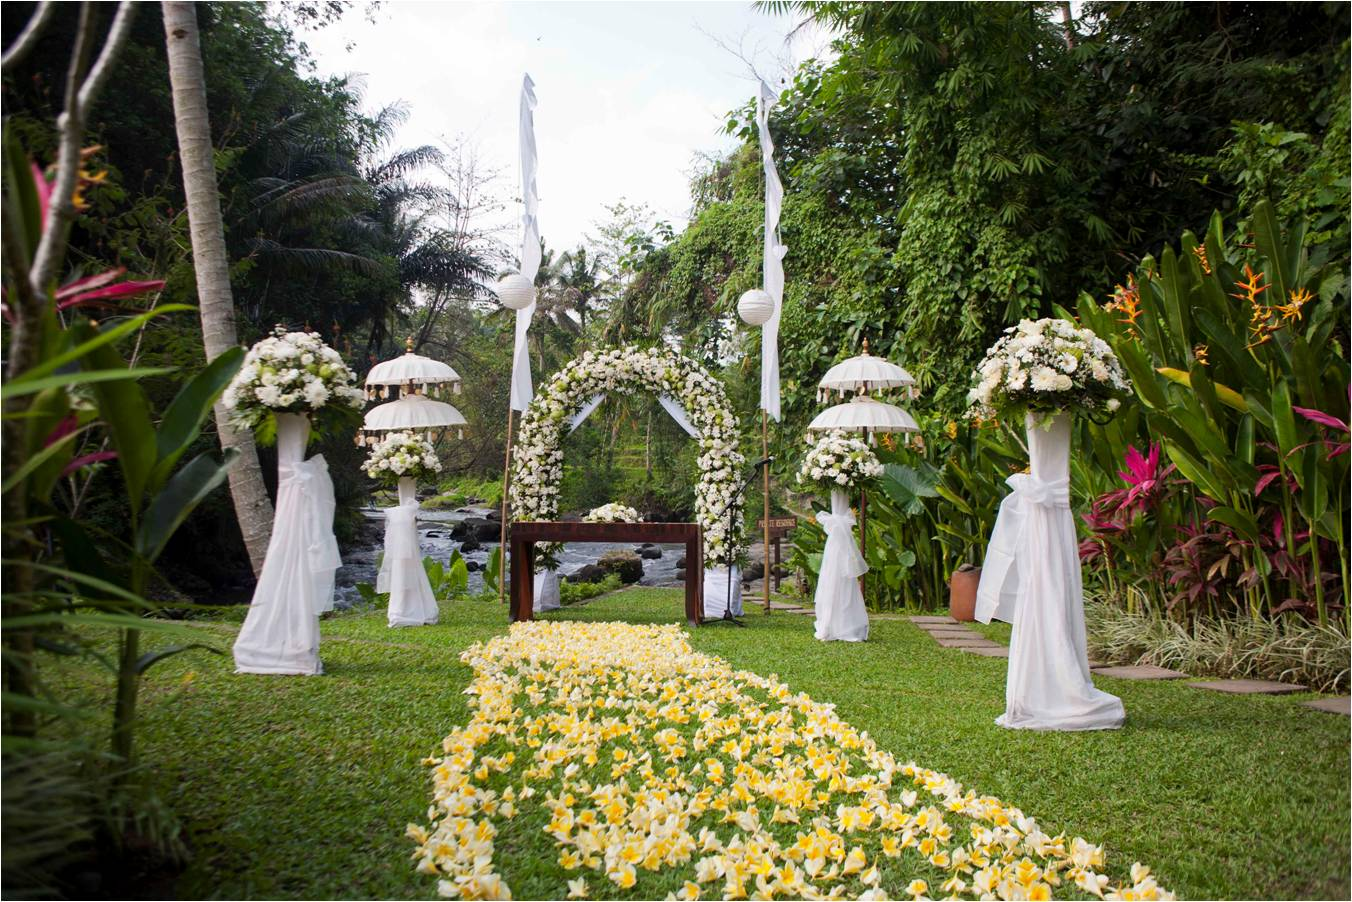 Bali garden wedding bali wedding a2zweddingcards for Bali wedding decoration ideas